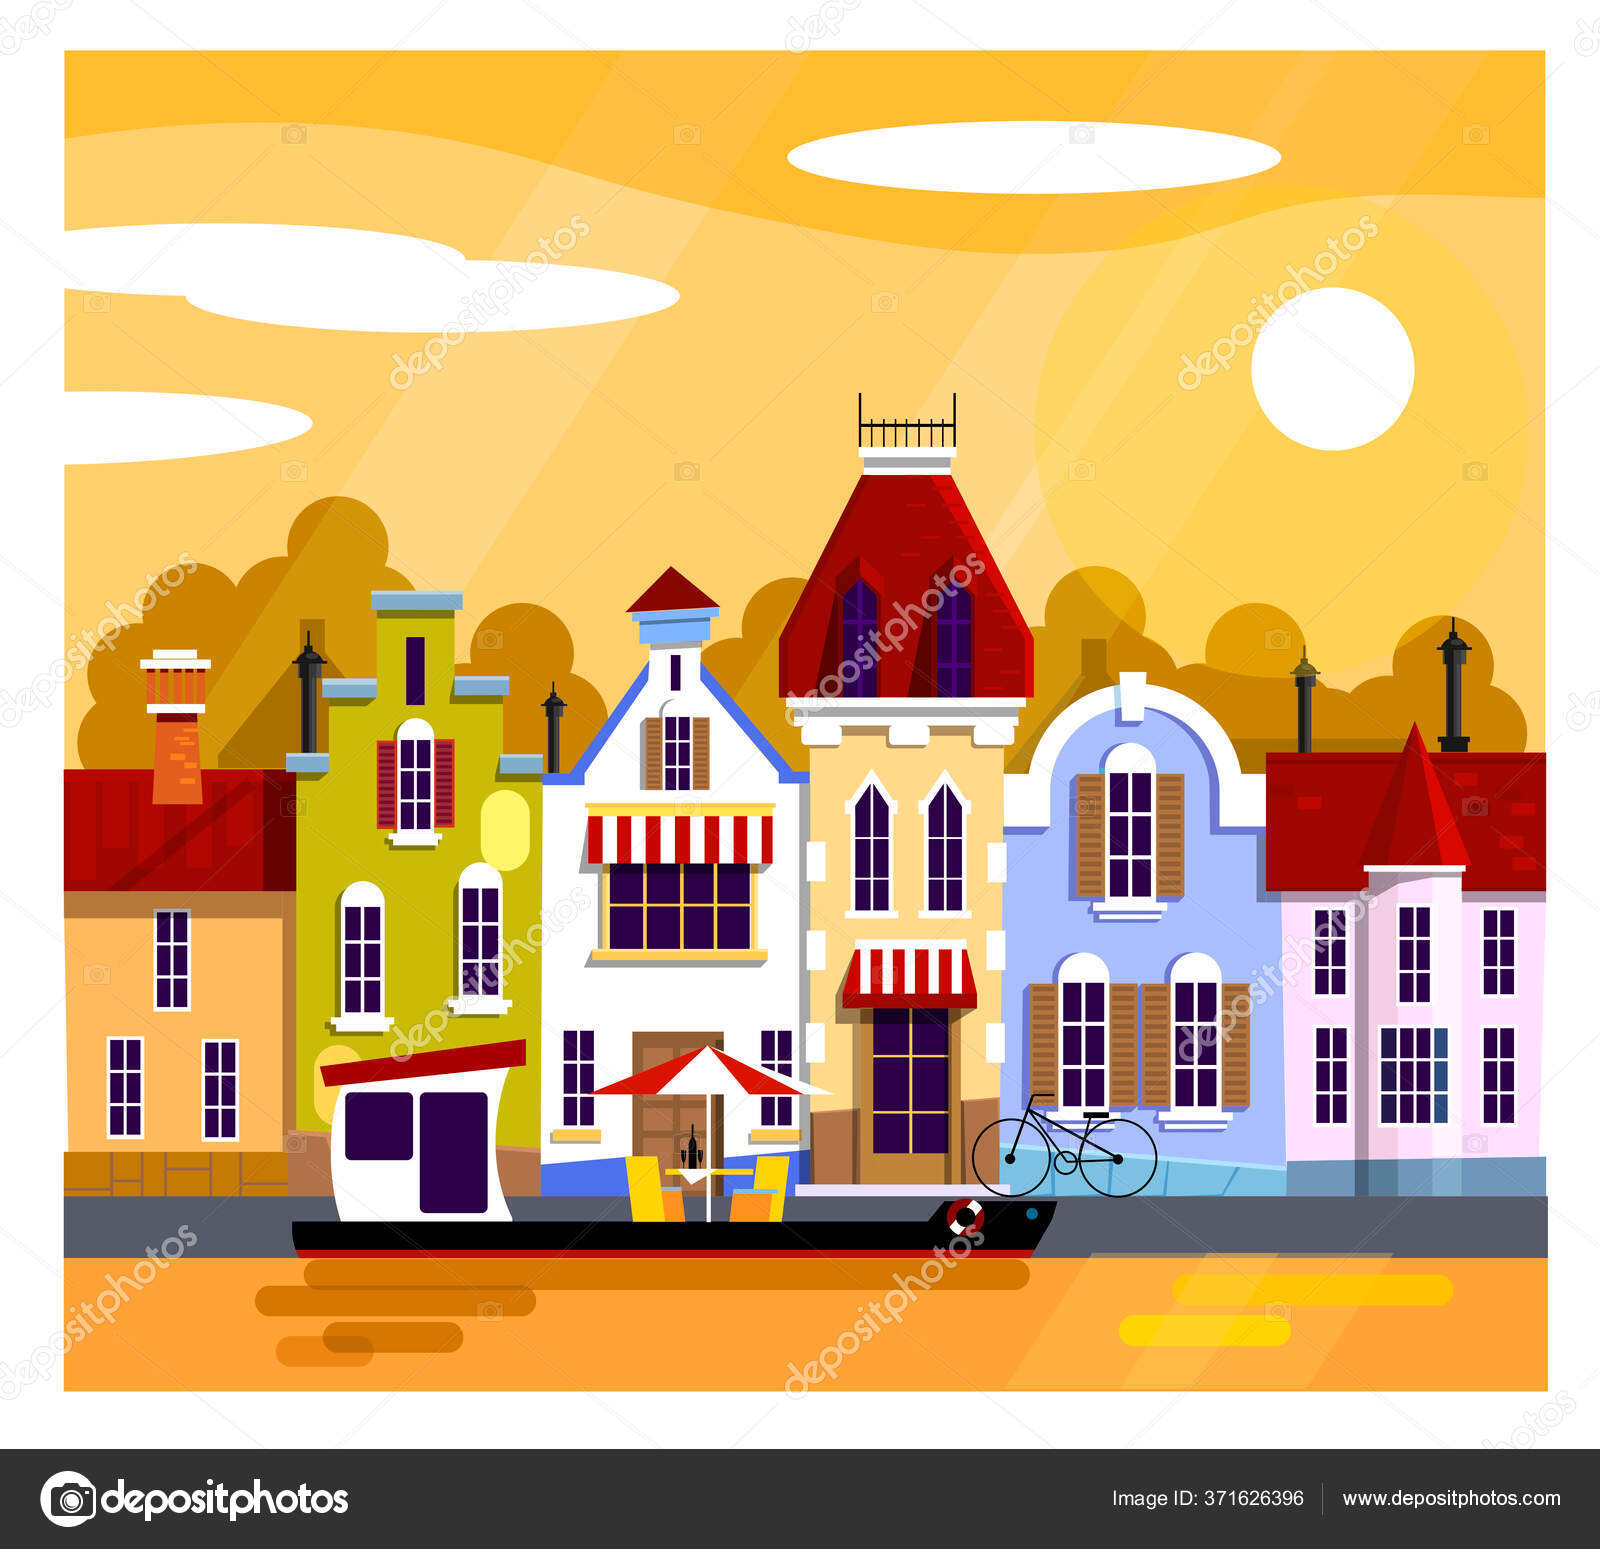 depositphotos 371626396 stock illustration cool vector background amsterdam street